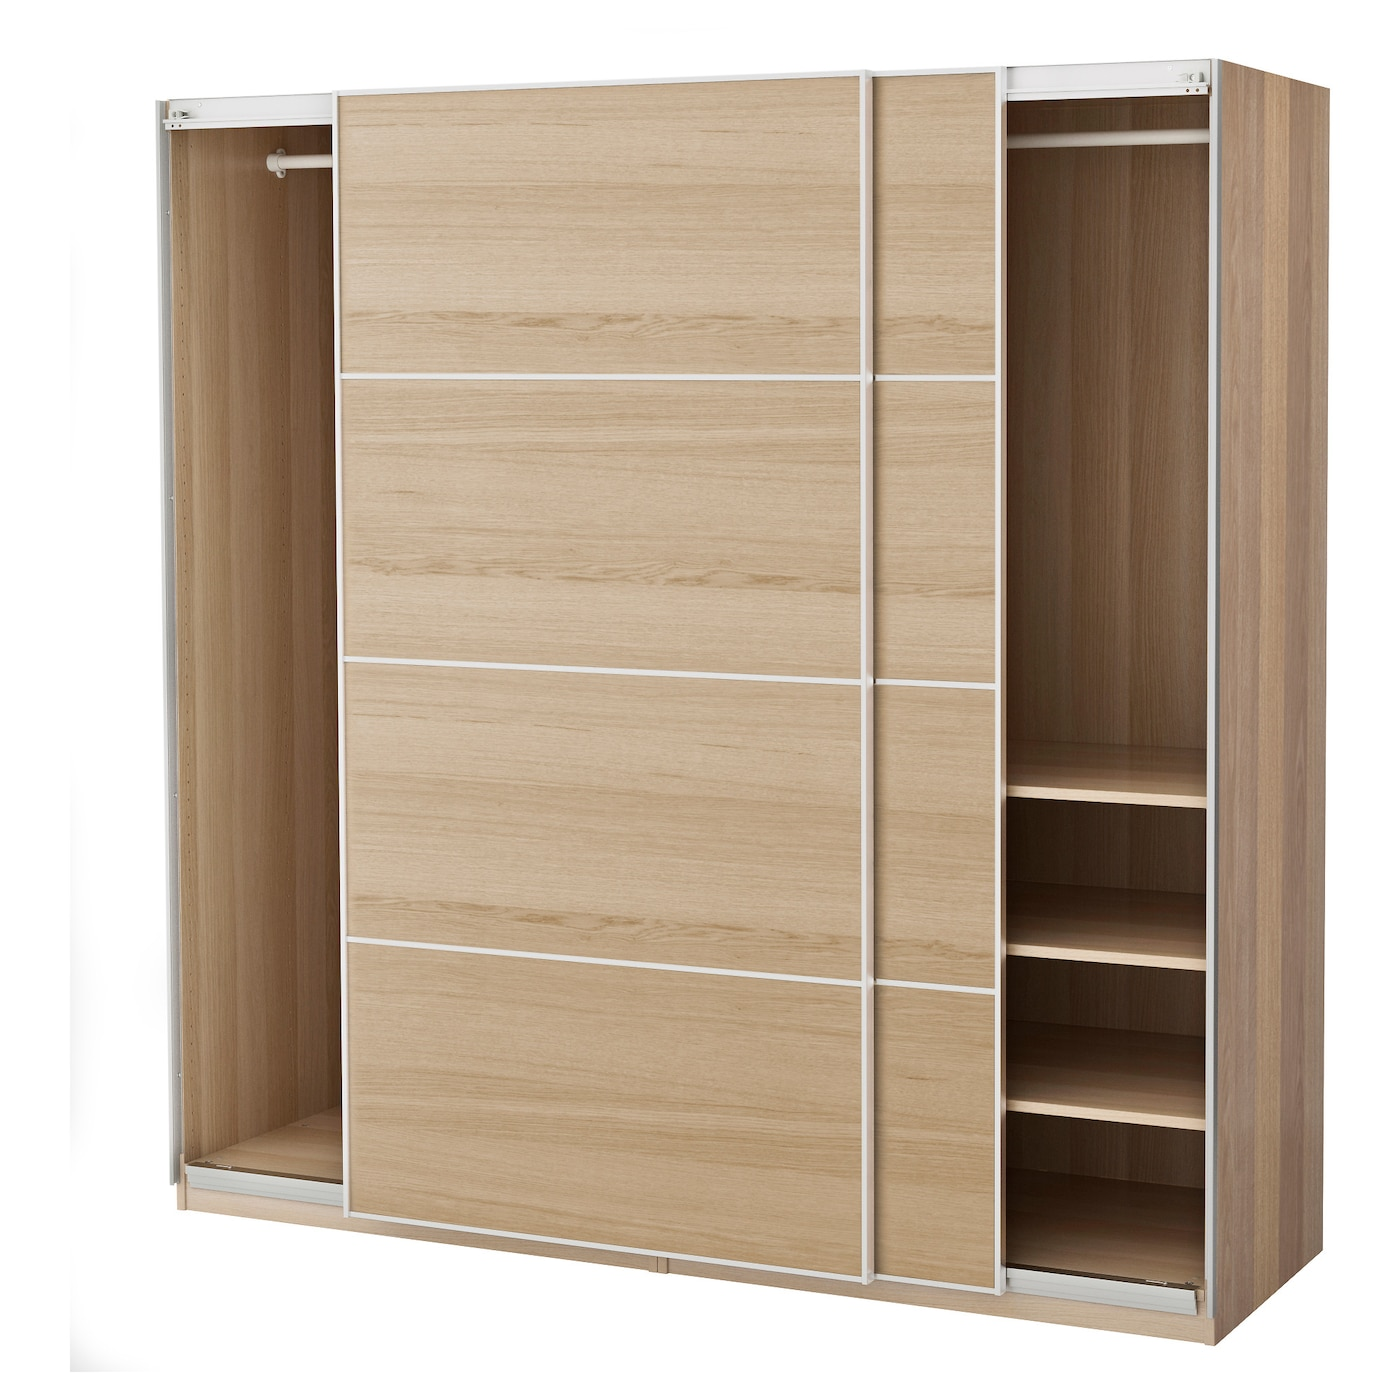 pax wardrobe white stained oak effect ilseng white stained oak veneer 200 x 66 x 201 cm ikea. Black Bedroom Furniture Sets. Home Design Ideas